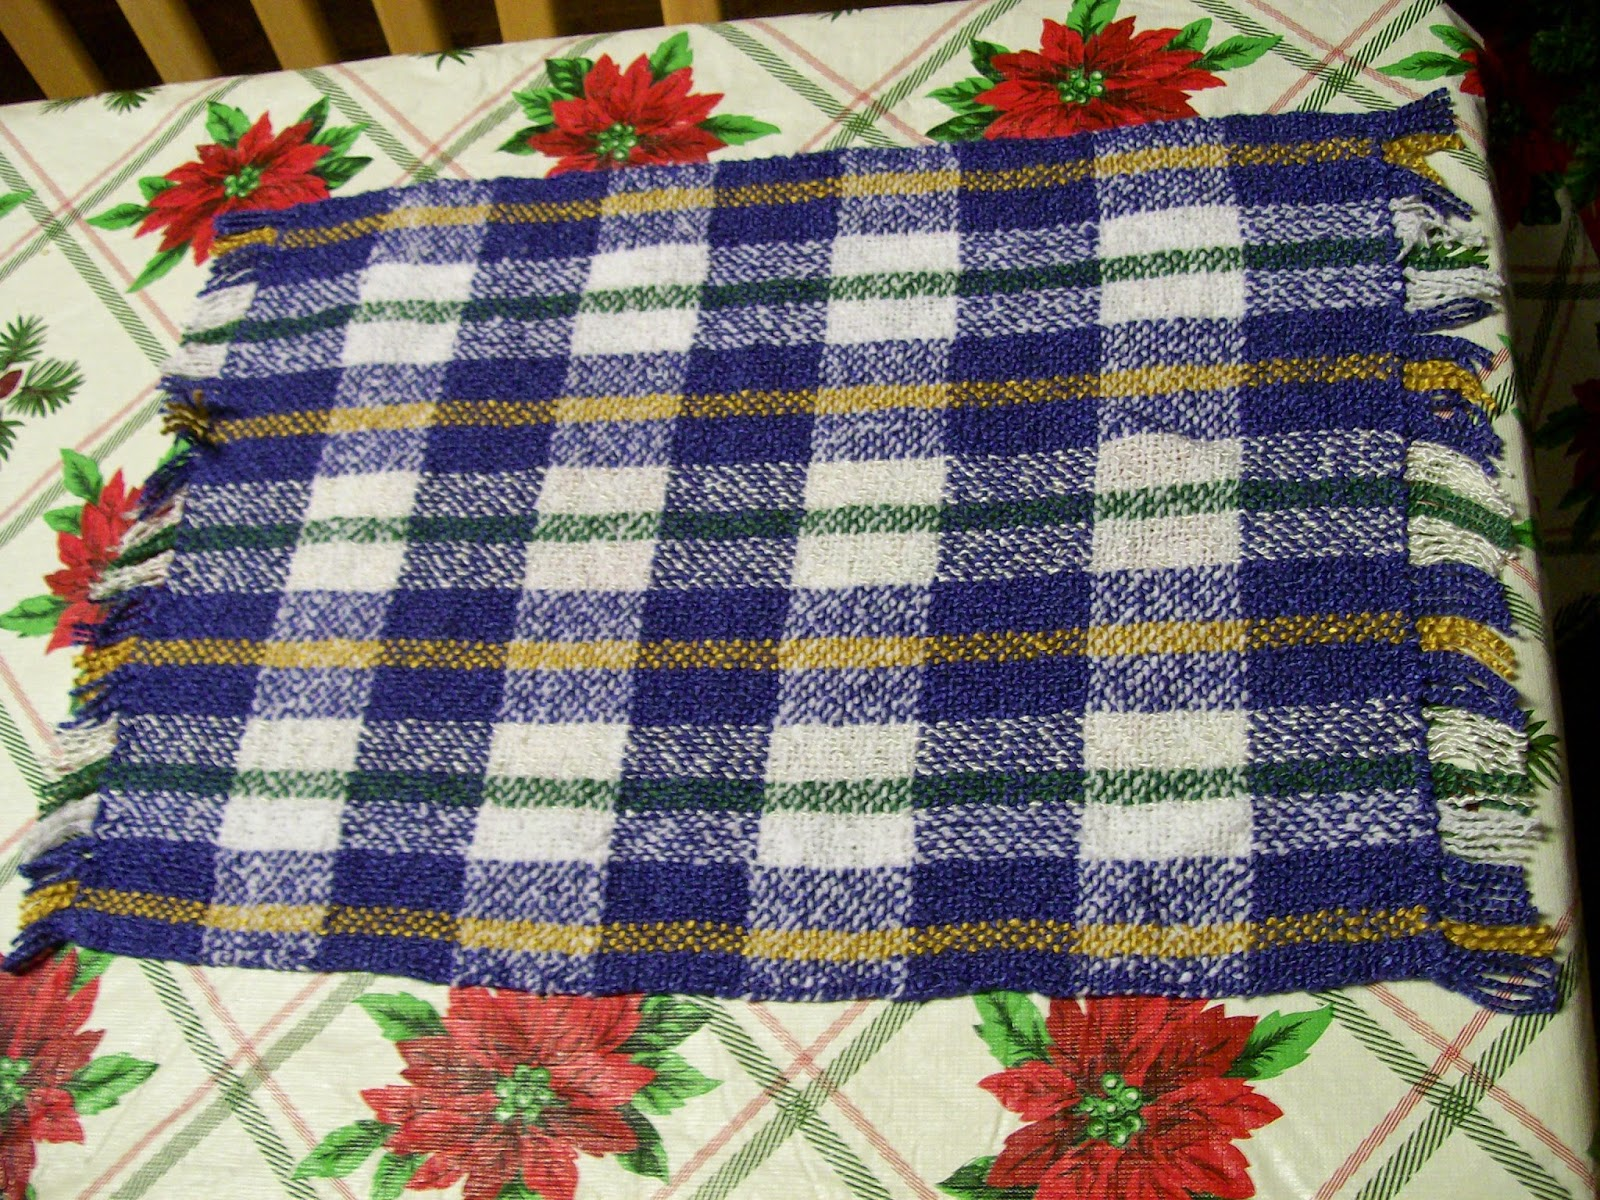 Handwoven plaid placemat.